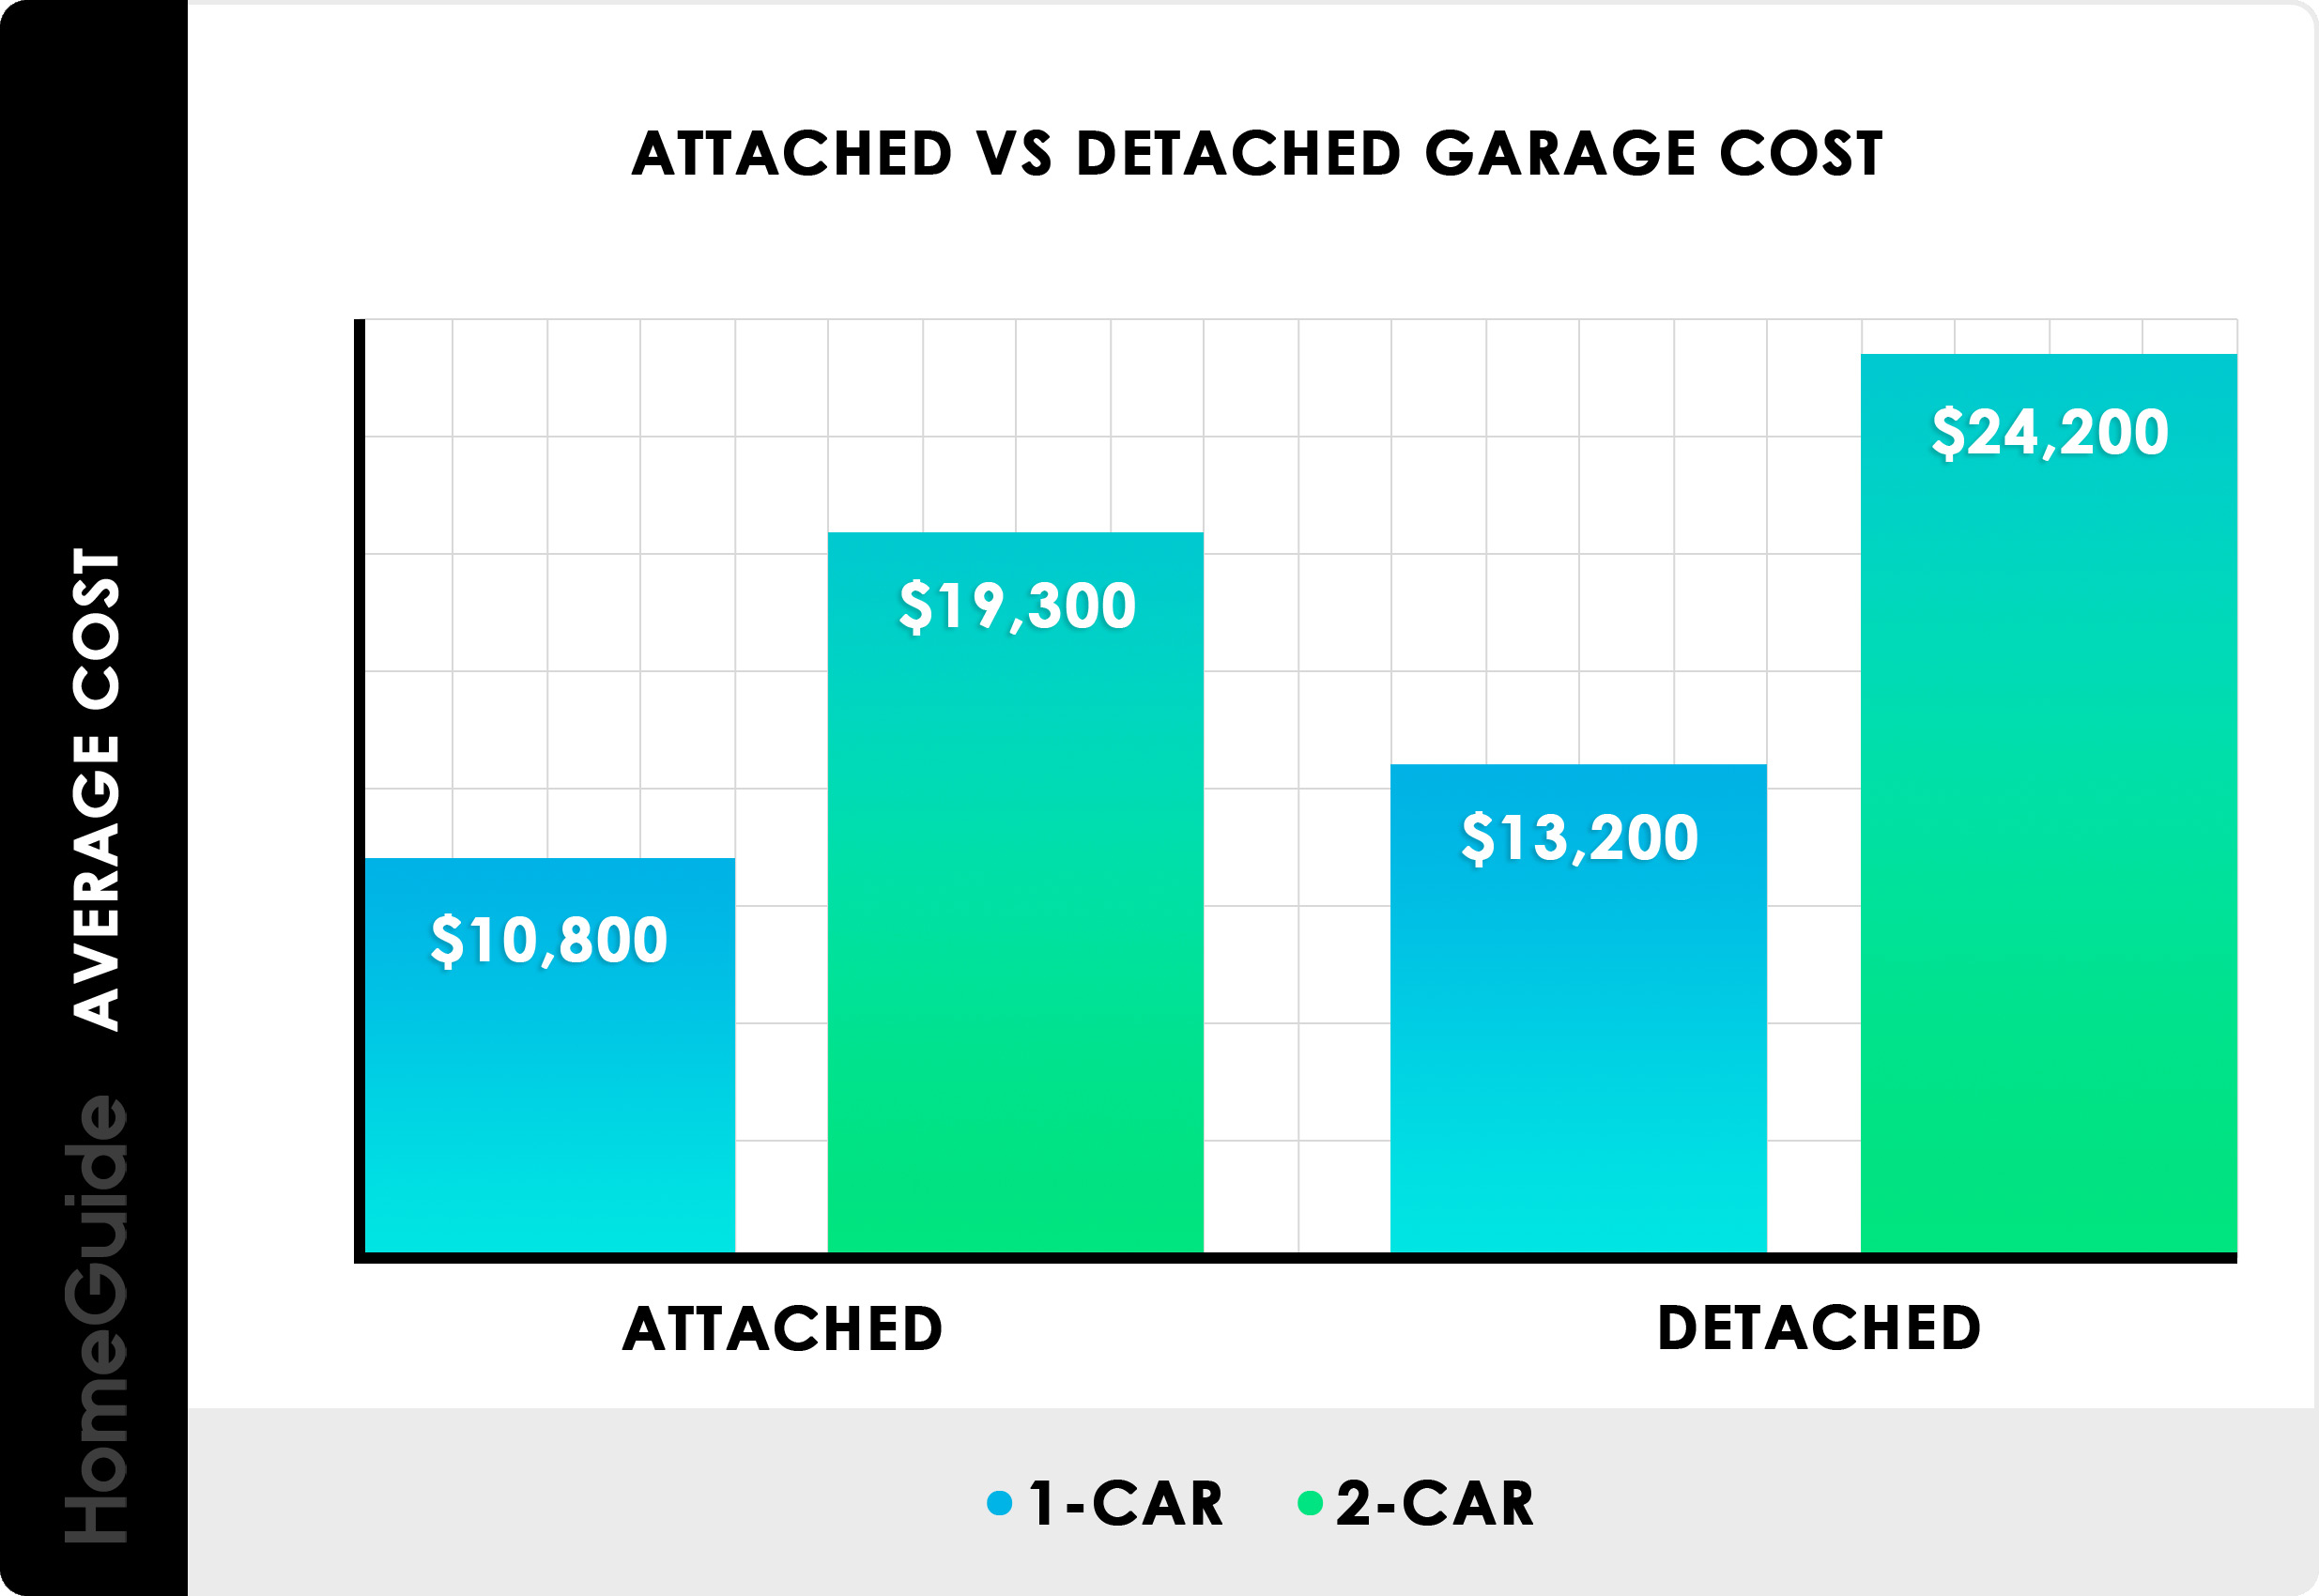 2019 Cost To Build A Garage | 1, 2, and 3 Car Prices Per Square Foot